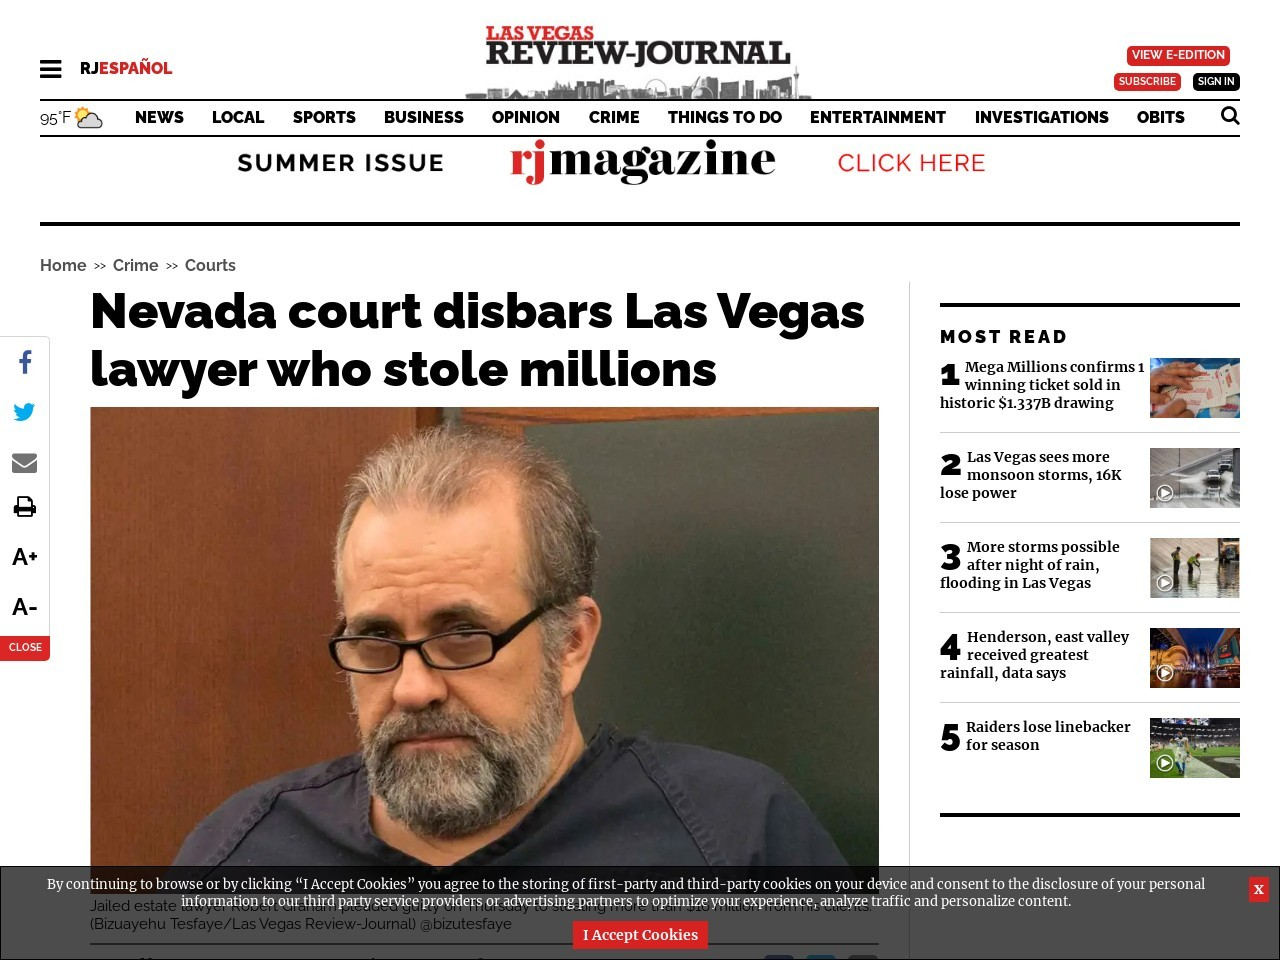 Nevada court disbars Las Vegas lawyer who stole millions